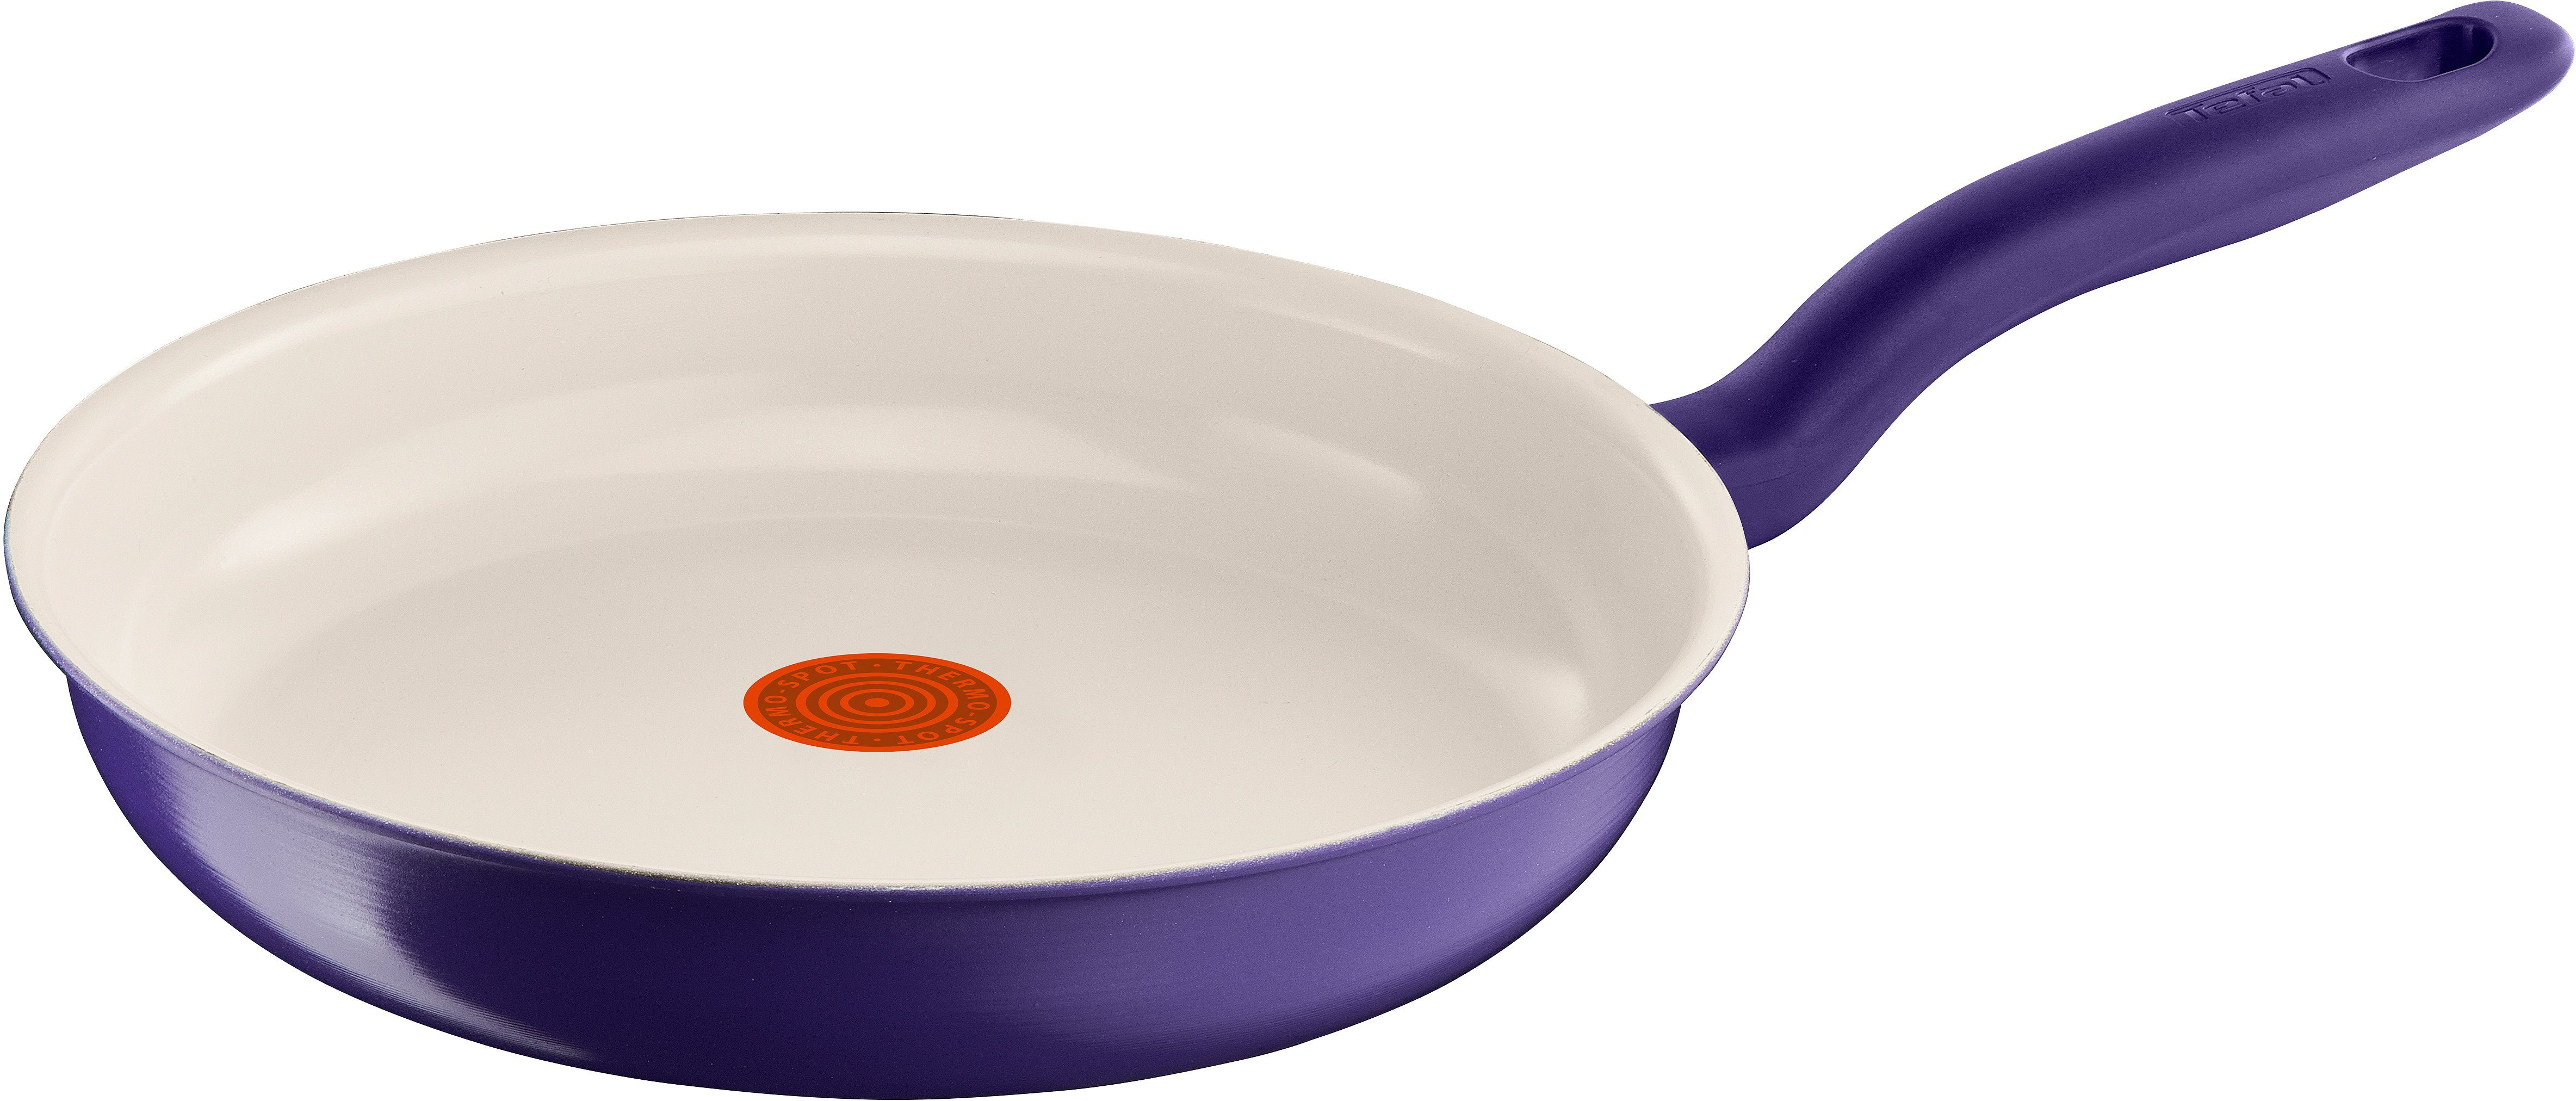 Tefal Bratpfanne, Induktion, »CERAMIC COLORS«